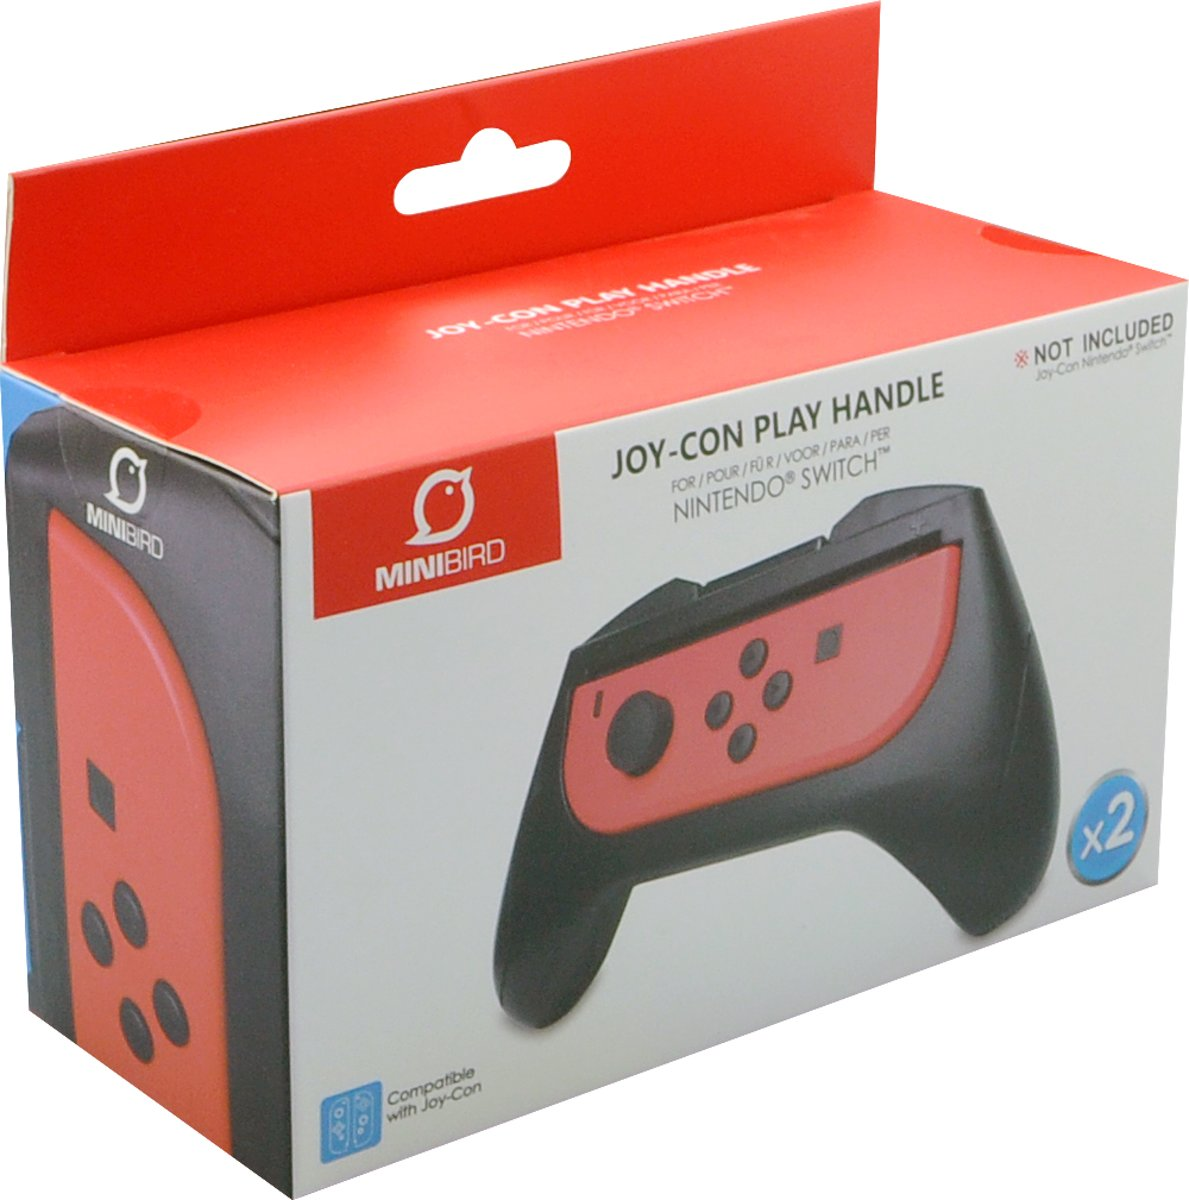 Play Handle for Nintendo Switch JoyCon